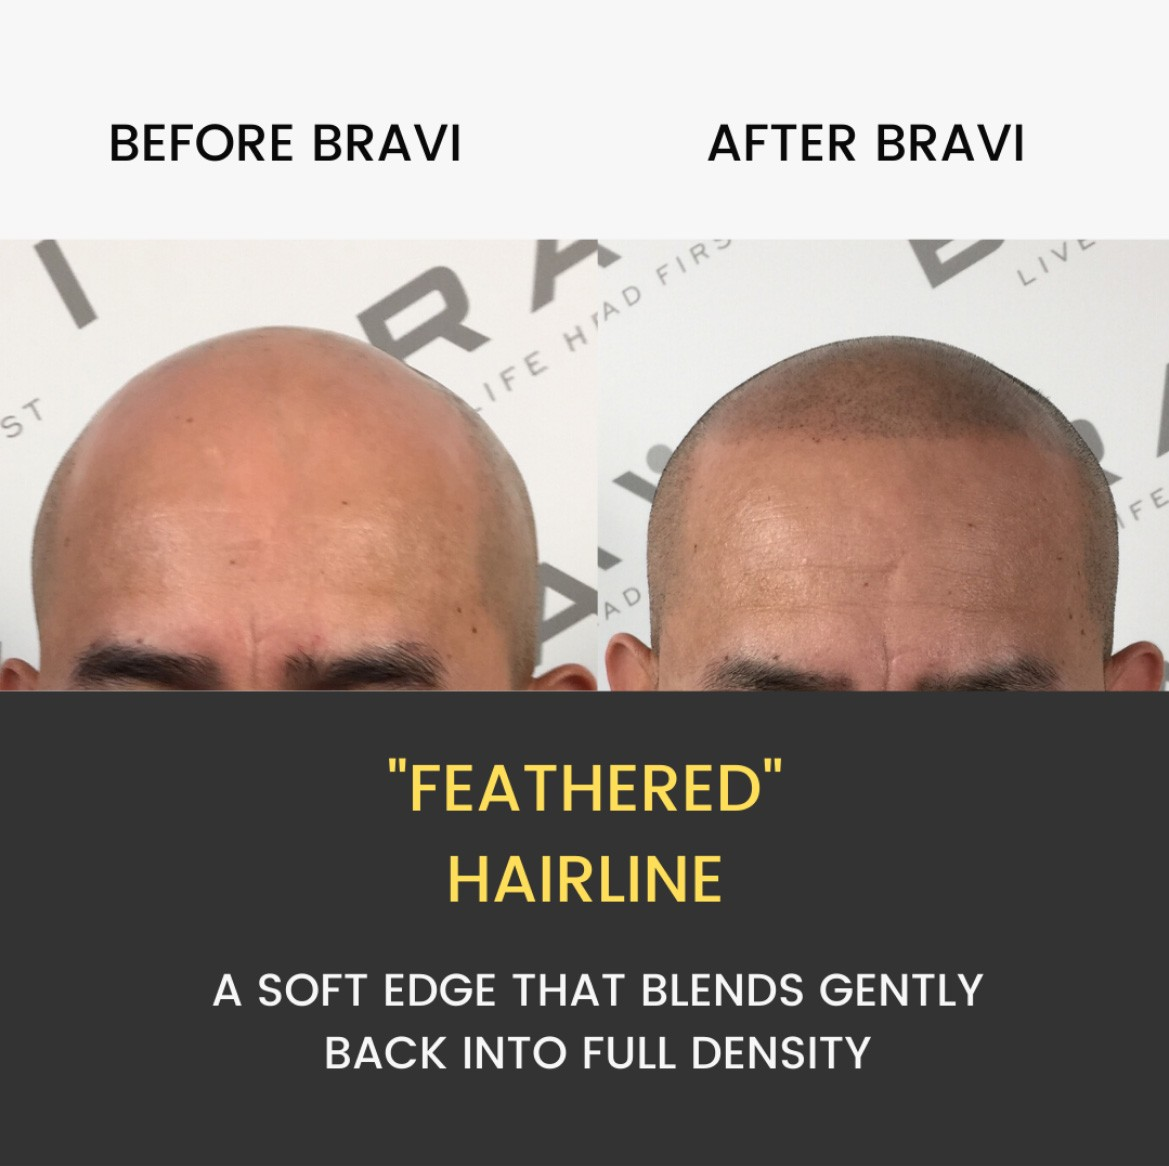 Hairline Restoration Based in Austin TX. BRAVI offers expert SMP Scalp MicroPigmentation and SMP correction. The comprehensive and stigma-free solution to hair loss.